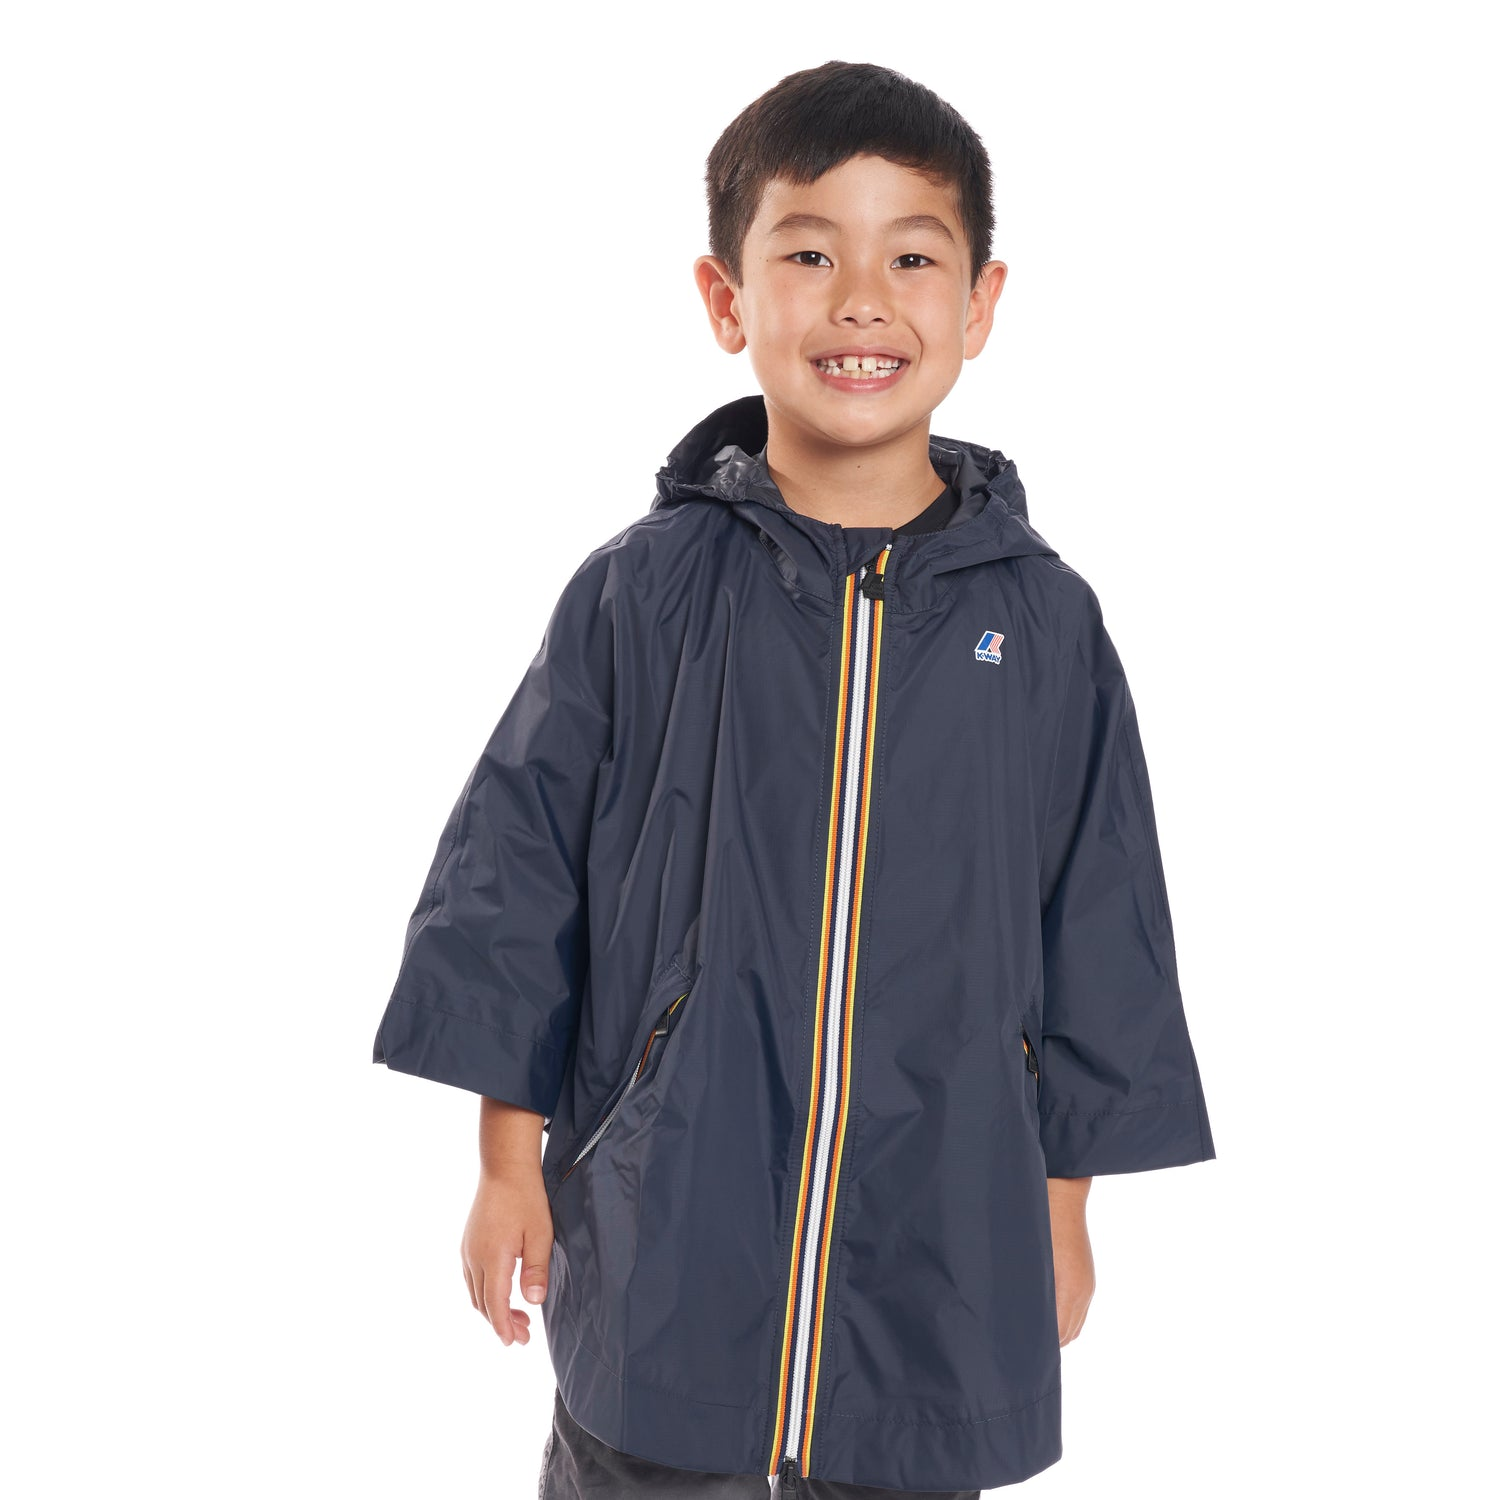 Kids Le Vrai 3.0 Morgan Poncho Blue Depth - Front